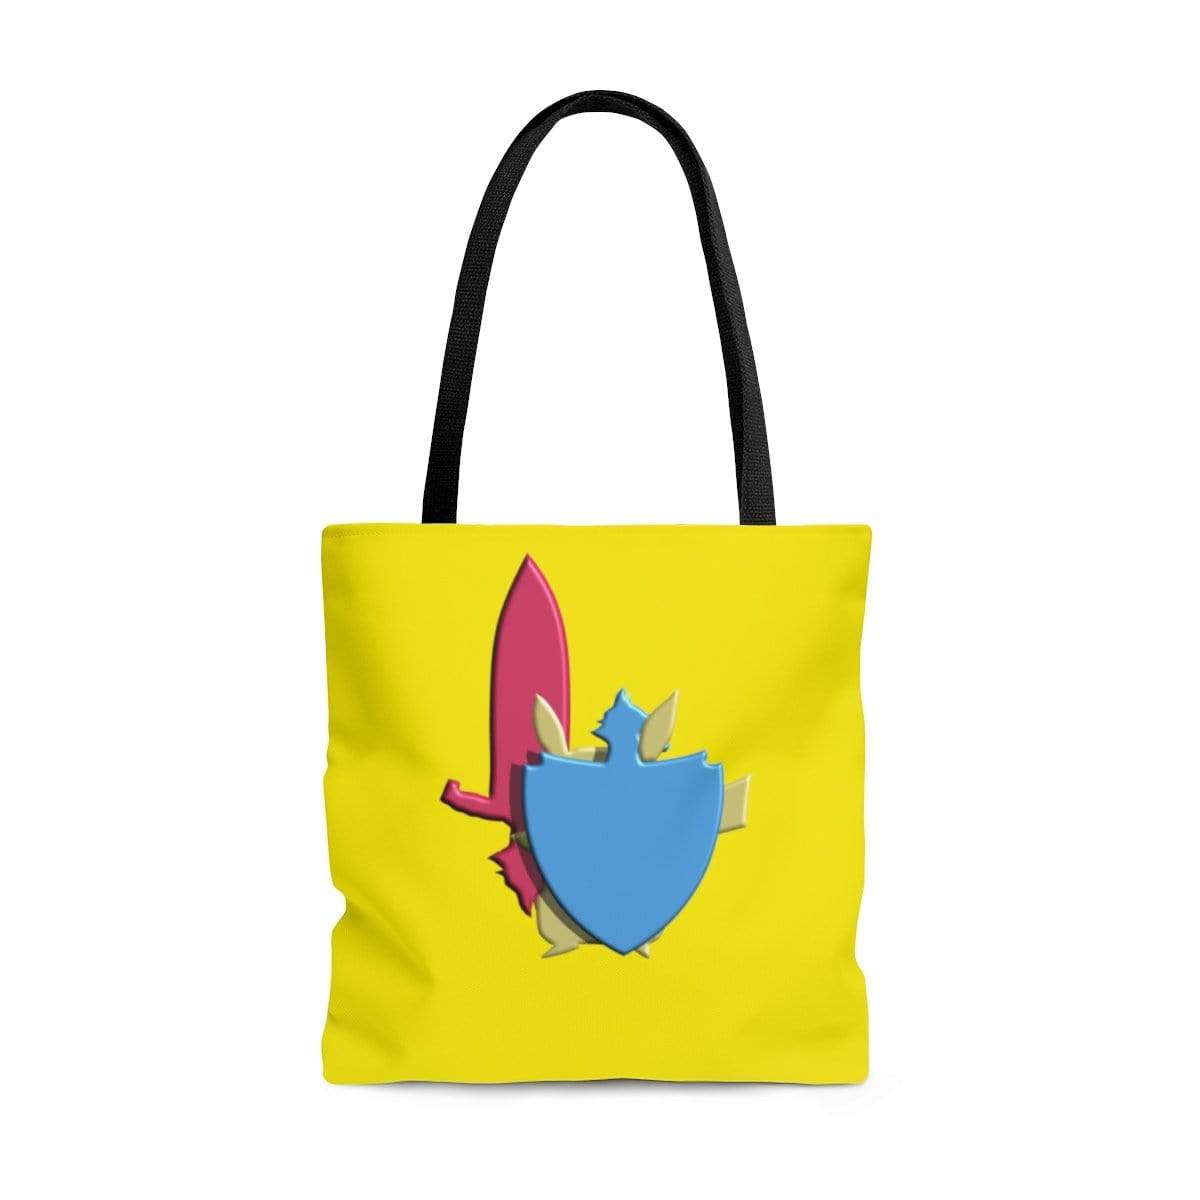 Plumskum Bags Large Gamer's Sword and Shield AOP Tote Bag